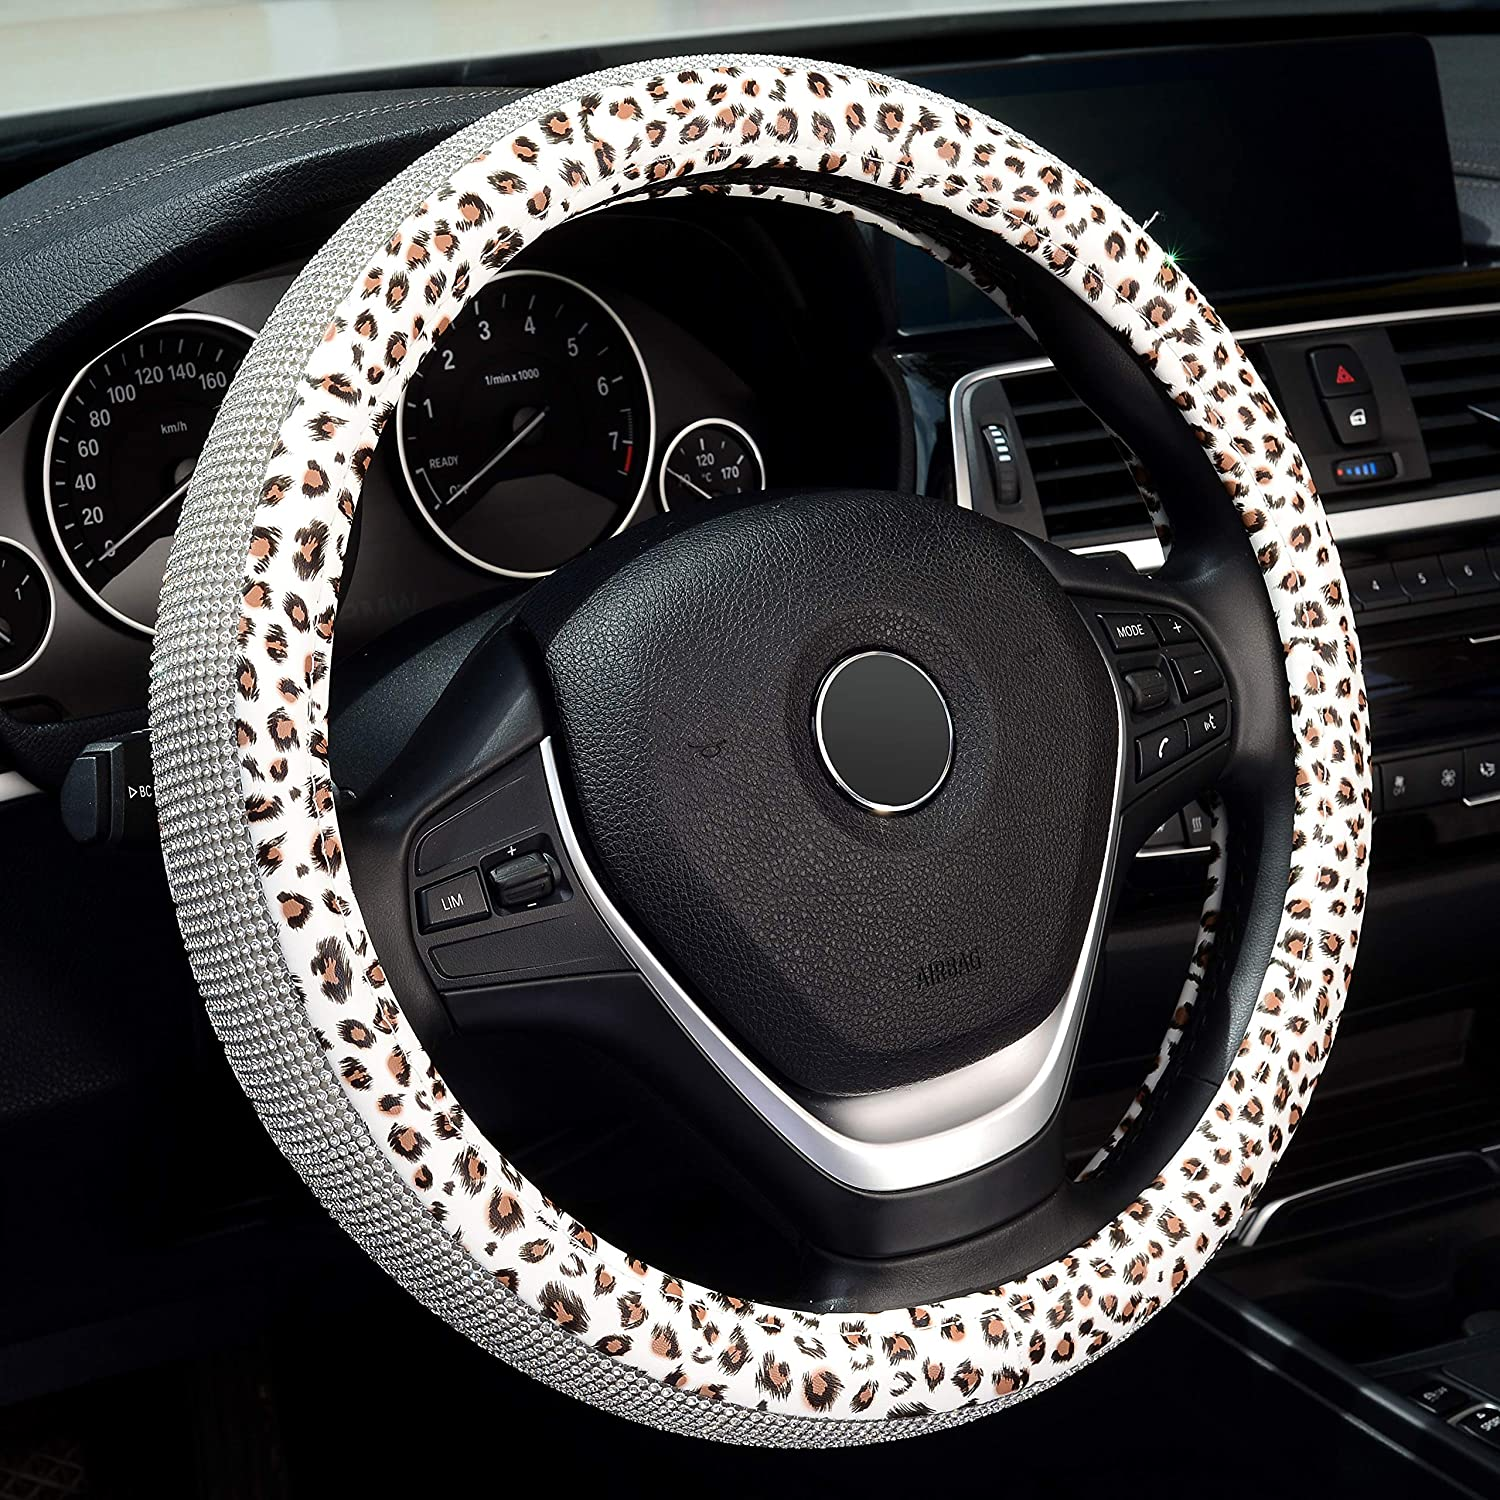 Universal Fit 15 Inch Car Wheel Protector with Bling Bling Crystal Rhinestones Cute Leopard for Women Girls Labbyway Diamond Leather Steering Wheel Cover White